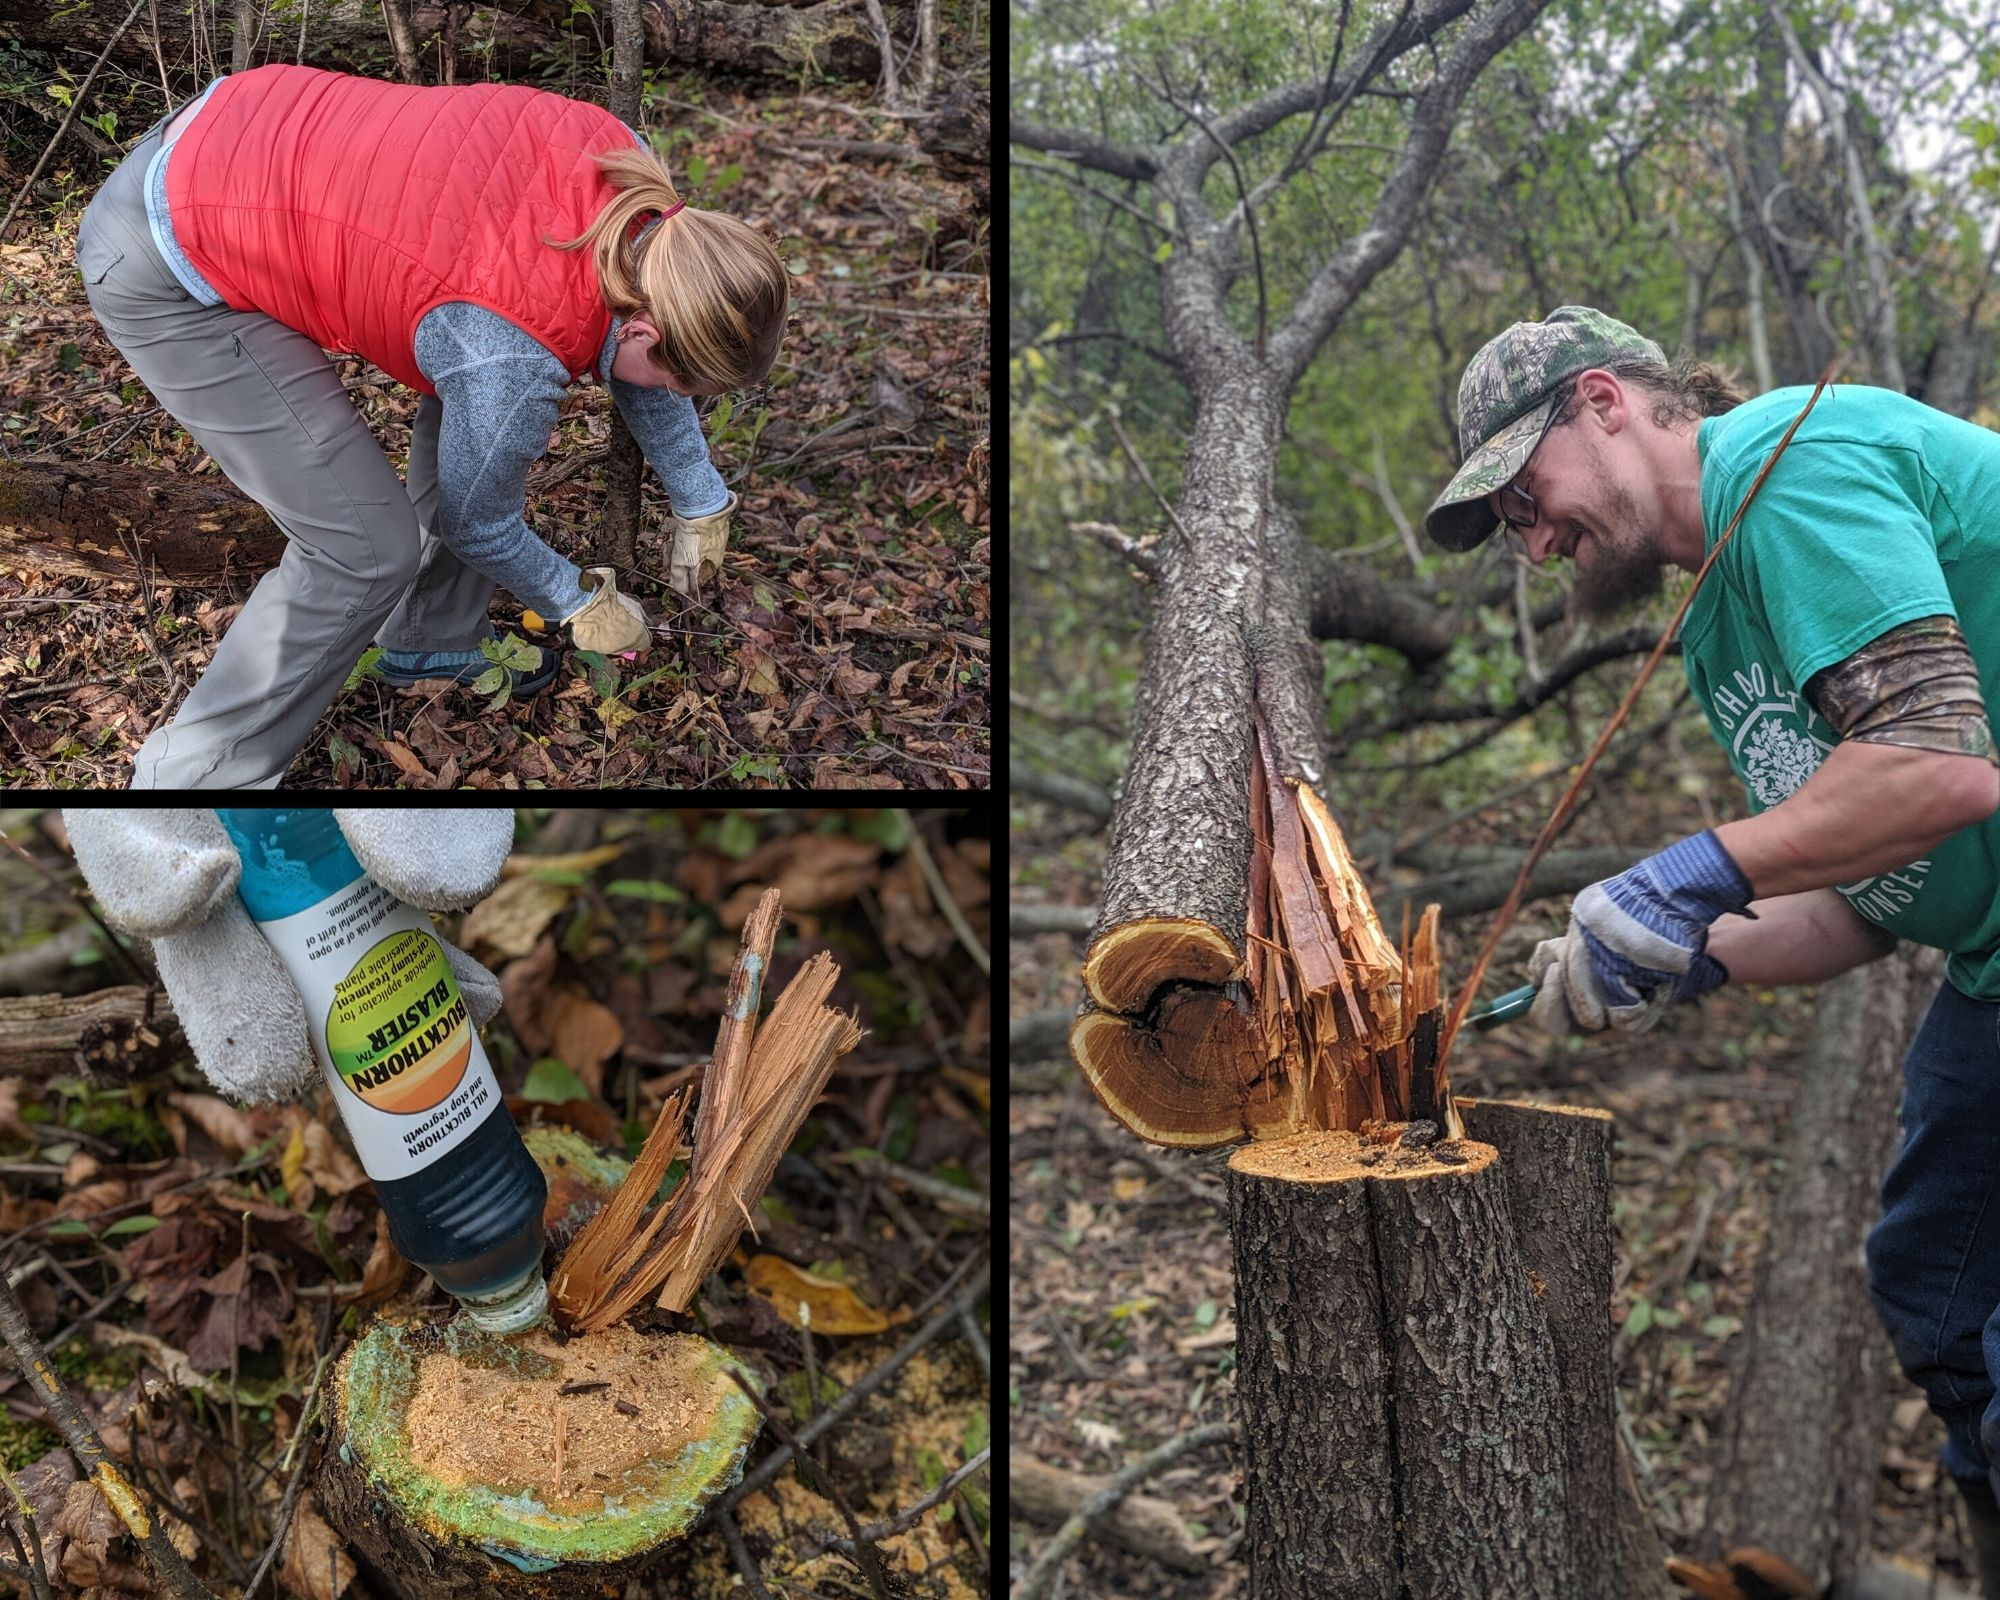 Volunteers from Good City and the Waukesha County Land Conservancy cutting down buckthorn